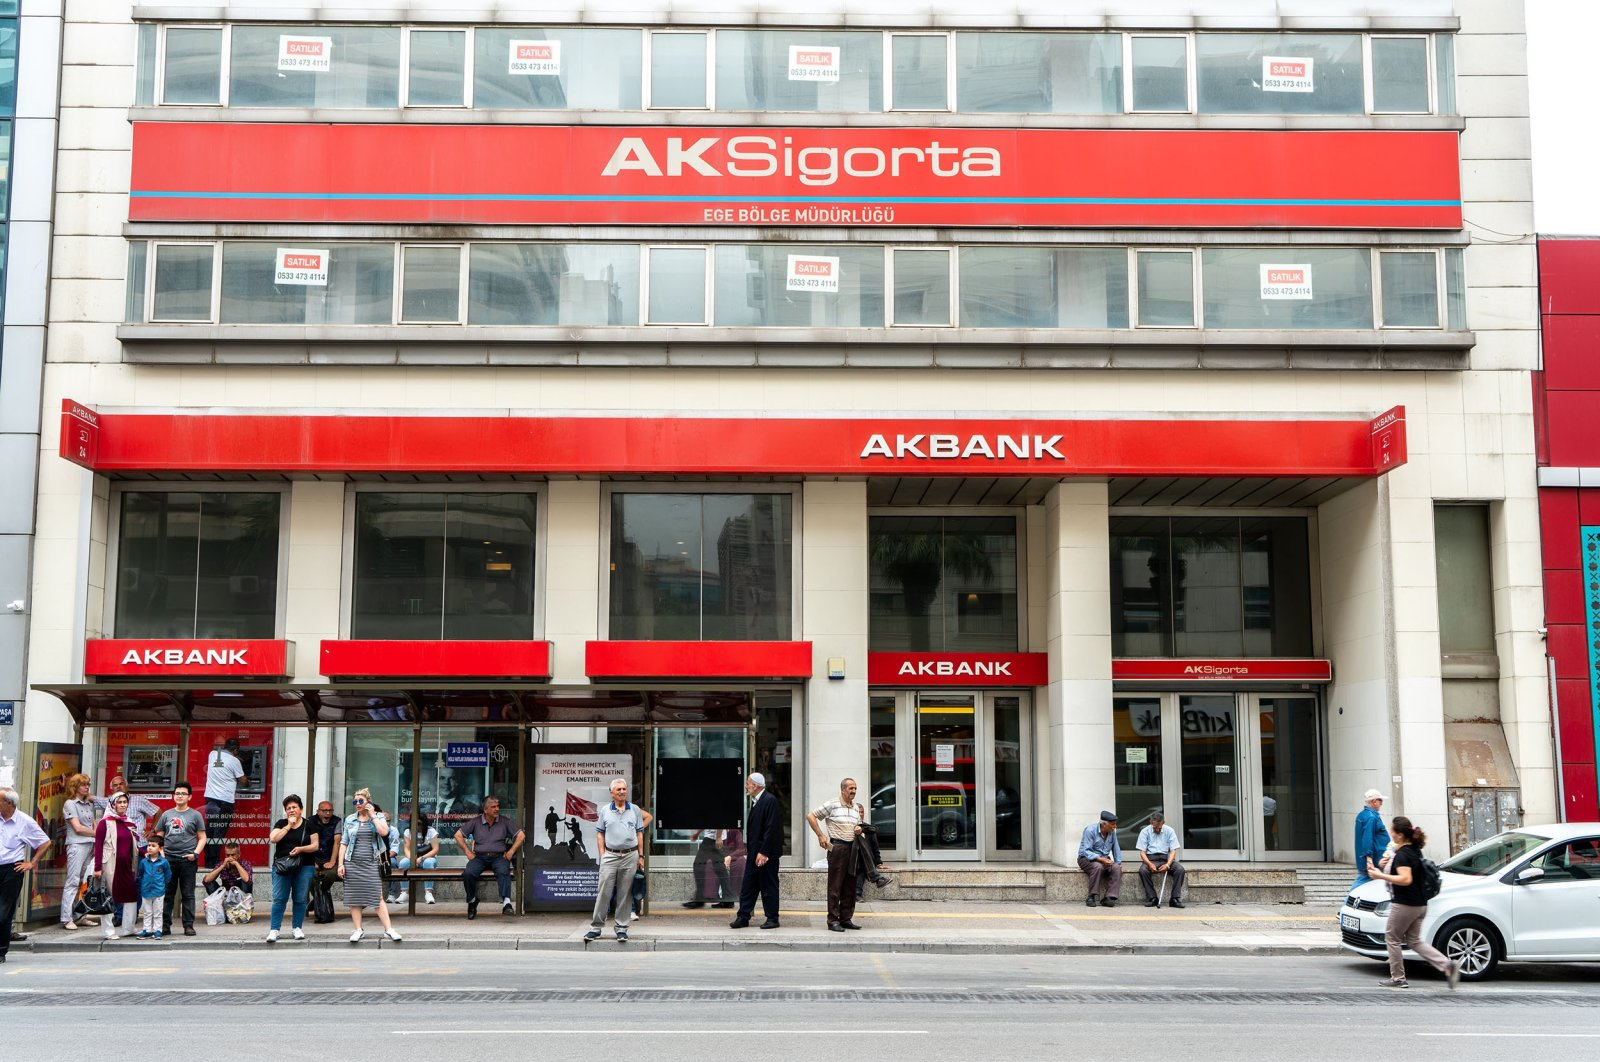 People wait at a bus stop in front of an Akbank branch in Istanbul, Turkey, May 19, 2019. (Shutterstock Photo)